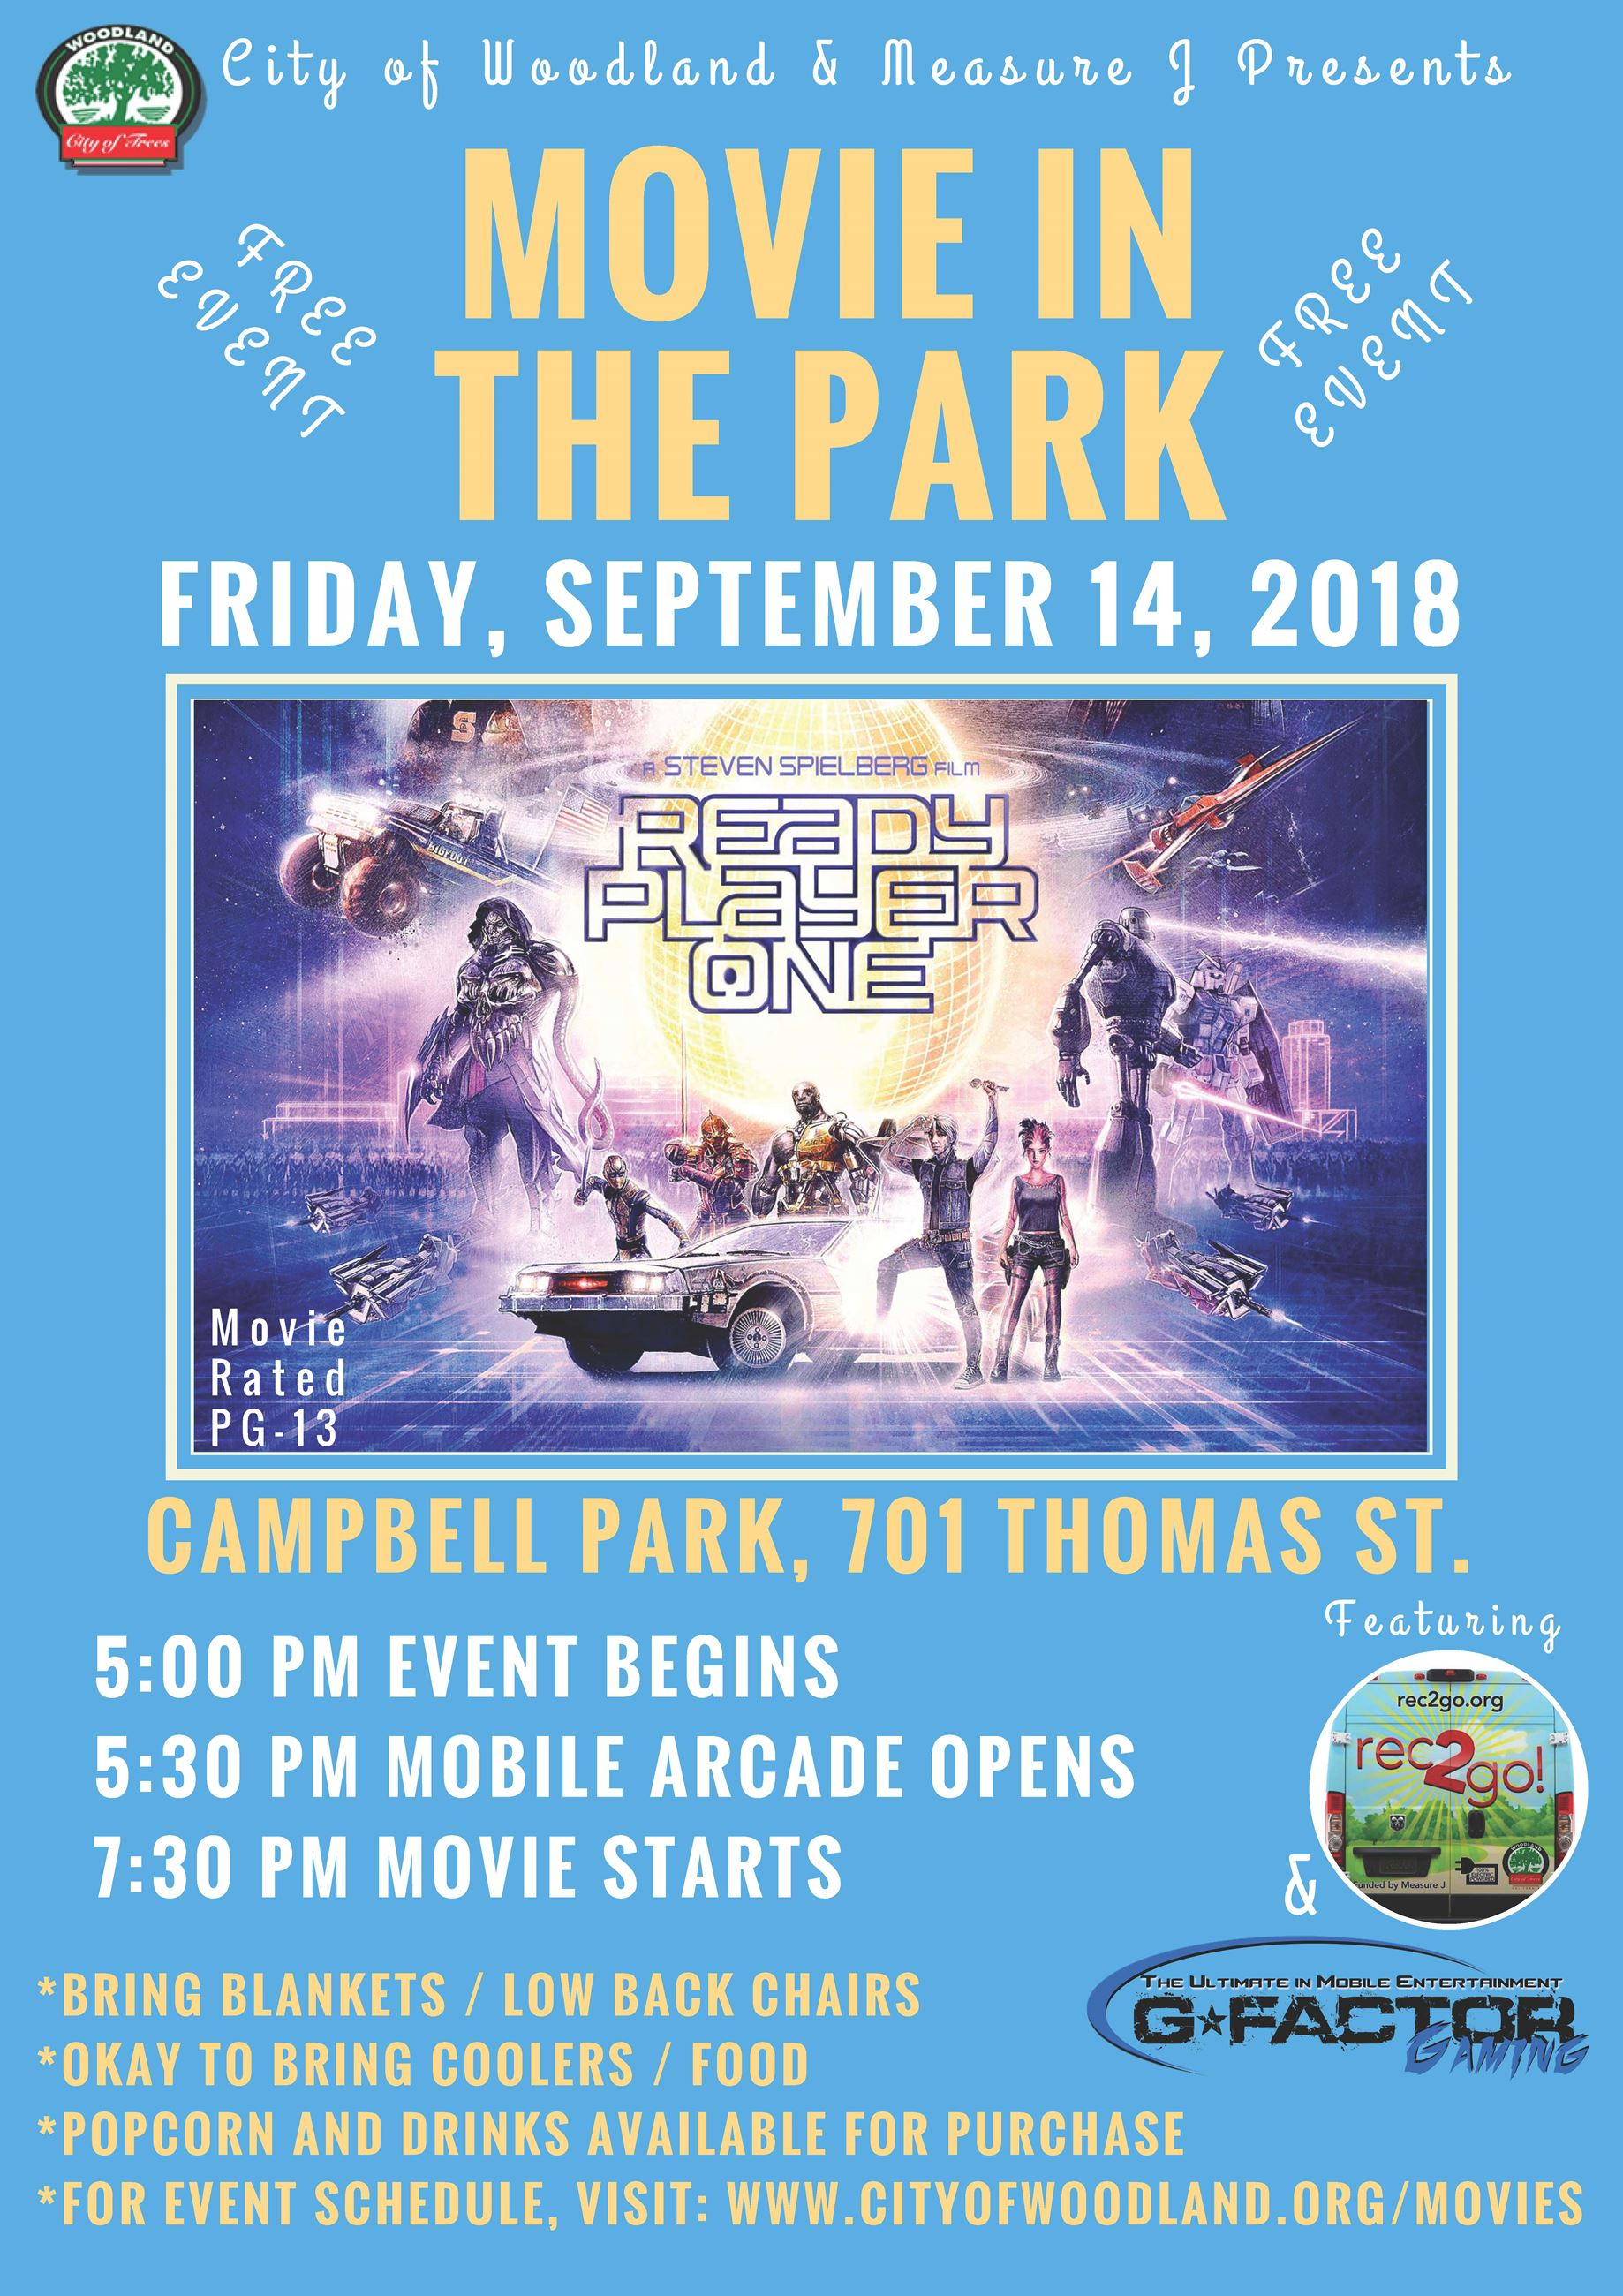 Movie in the Park at Campbell Park